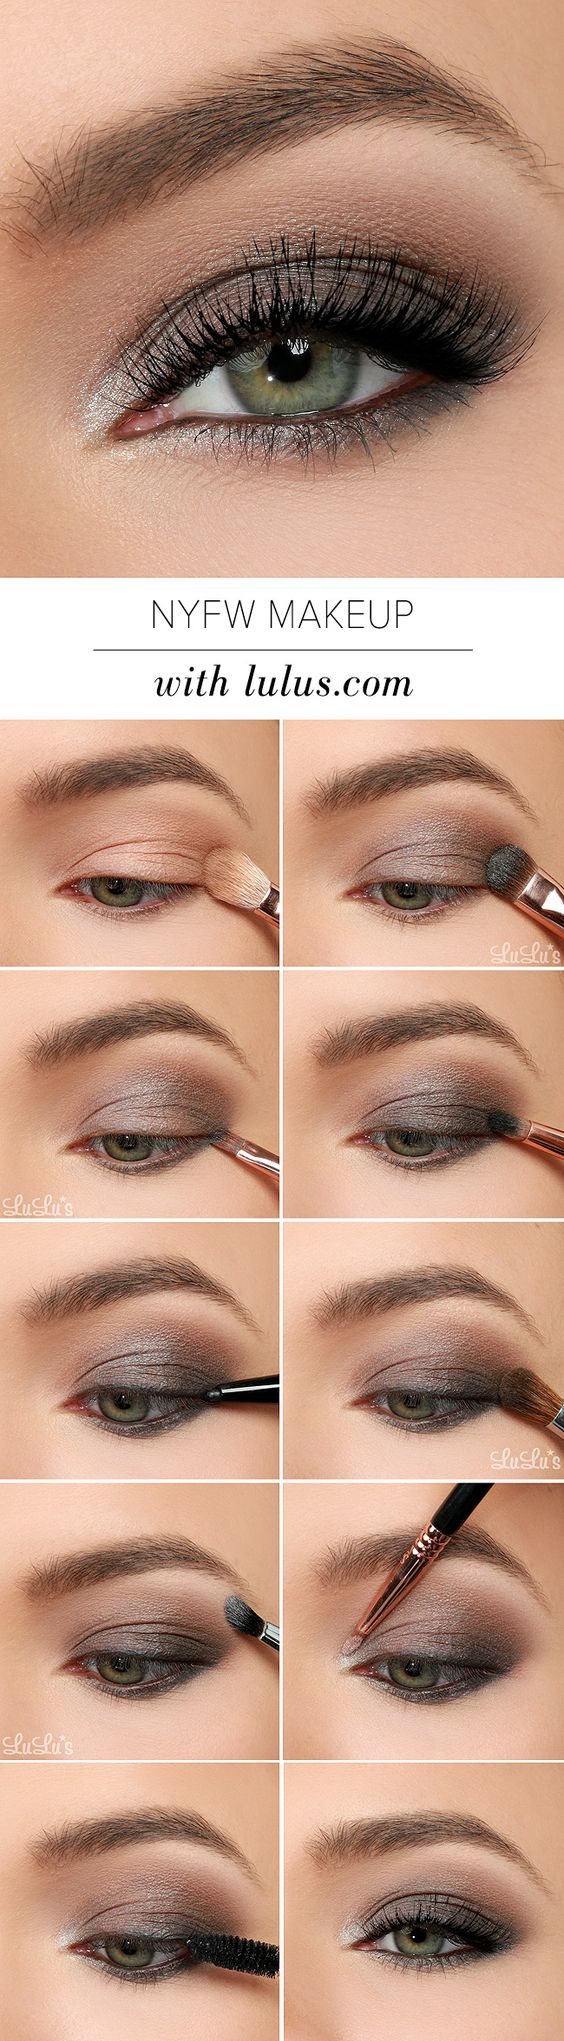 10 quick & easy step by step smokey eye makeup tutorials 2019